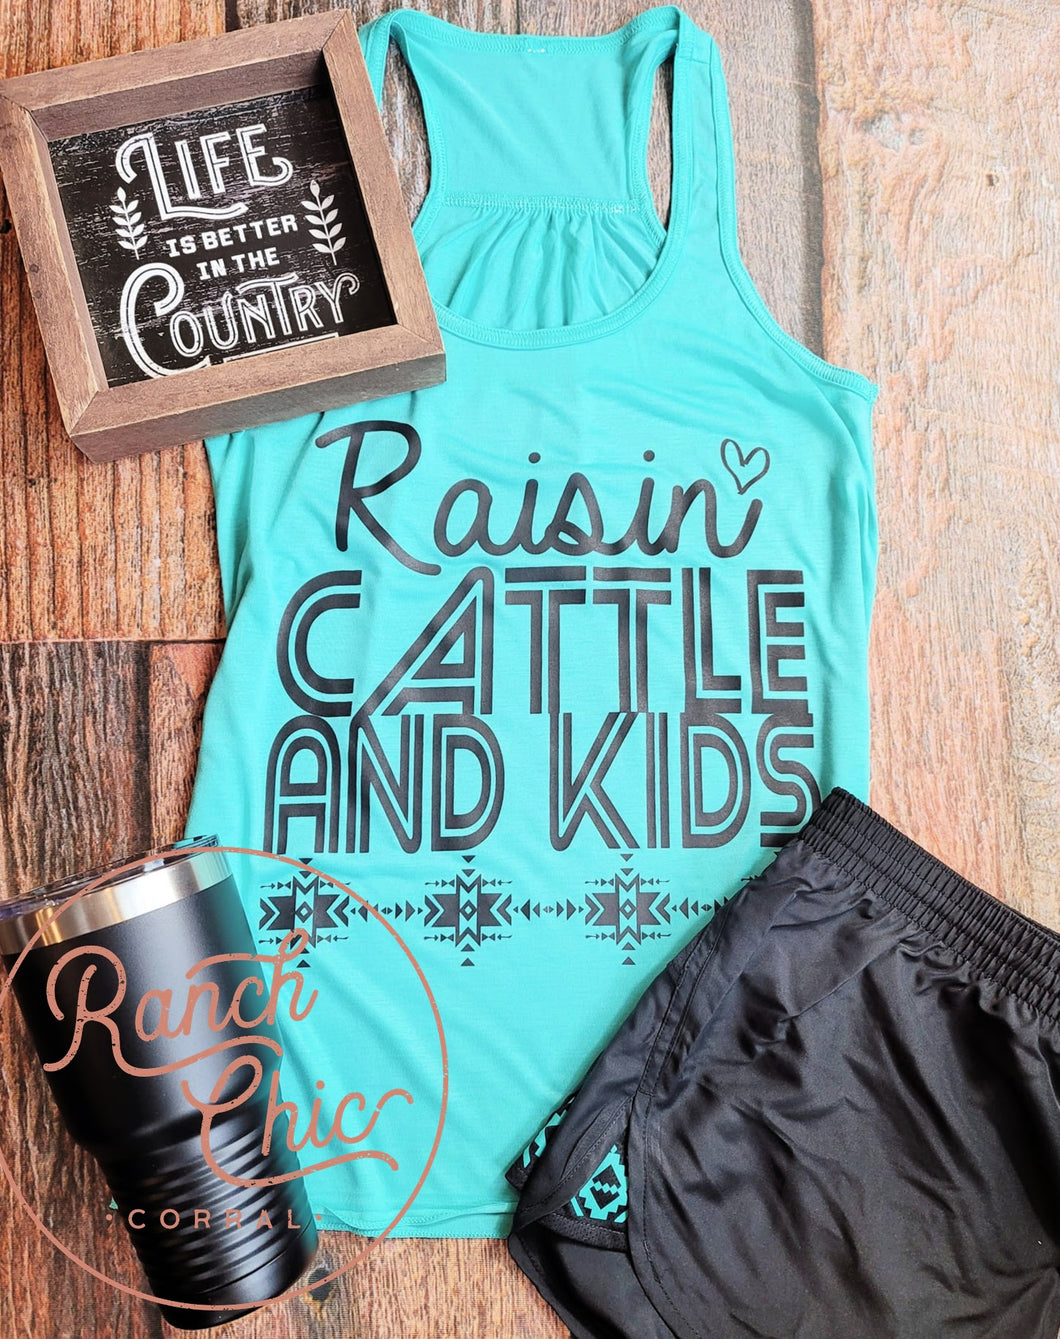 Raisin Cattle & Kids Activewear